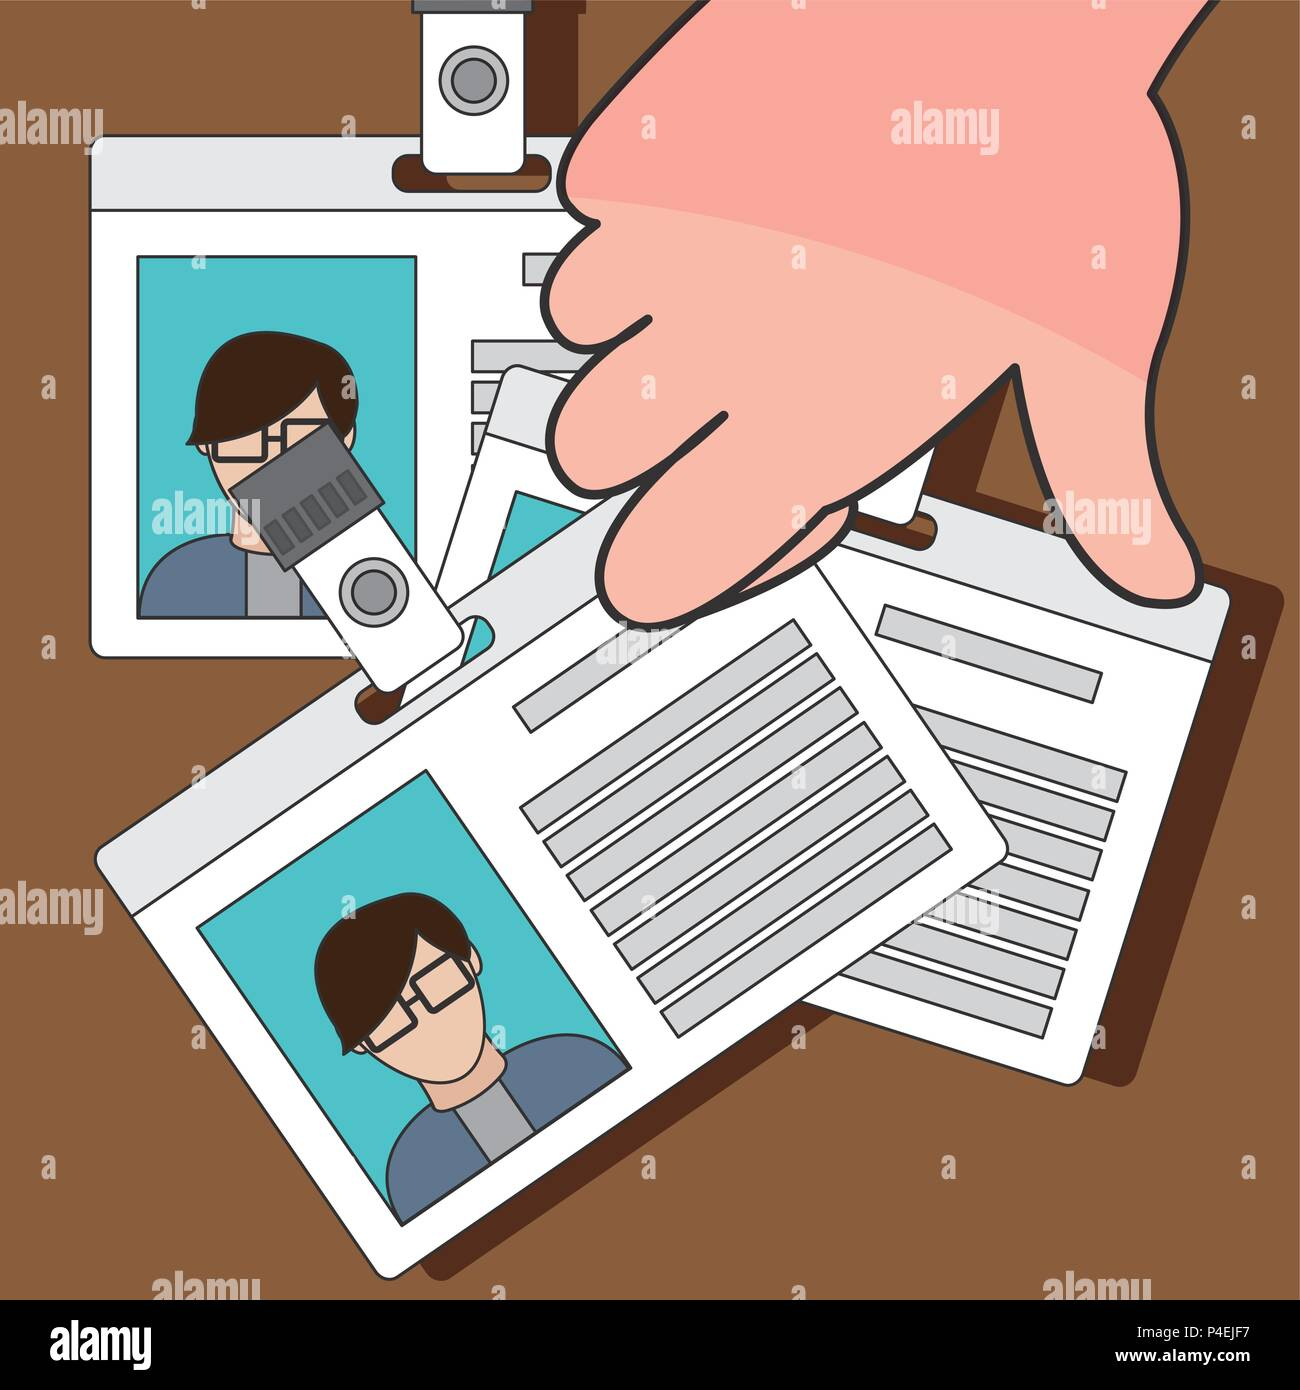 Hand stealing id - Stock Vector